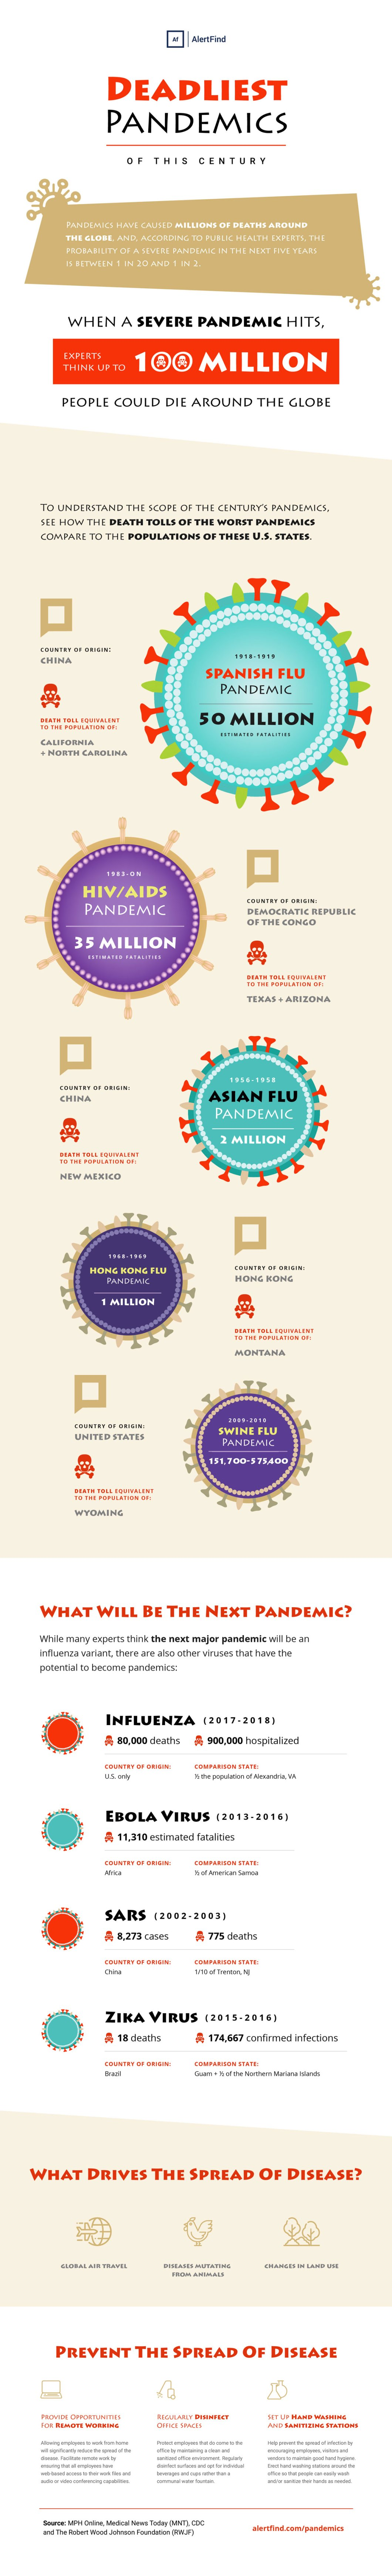 Protecting the Human Race: Preparing for Pandemics - Infographic